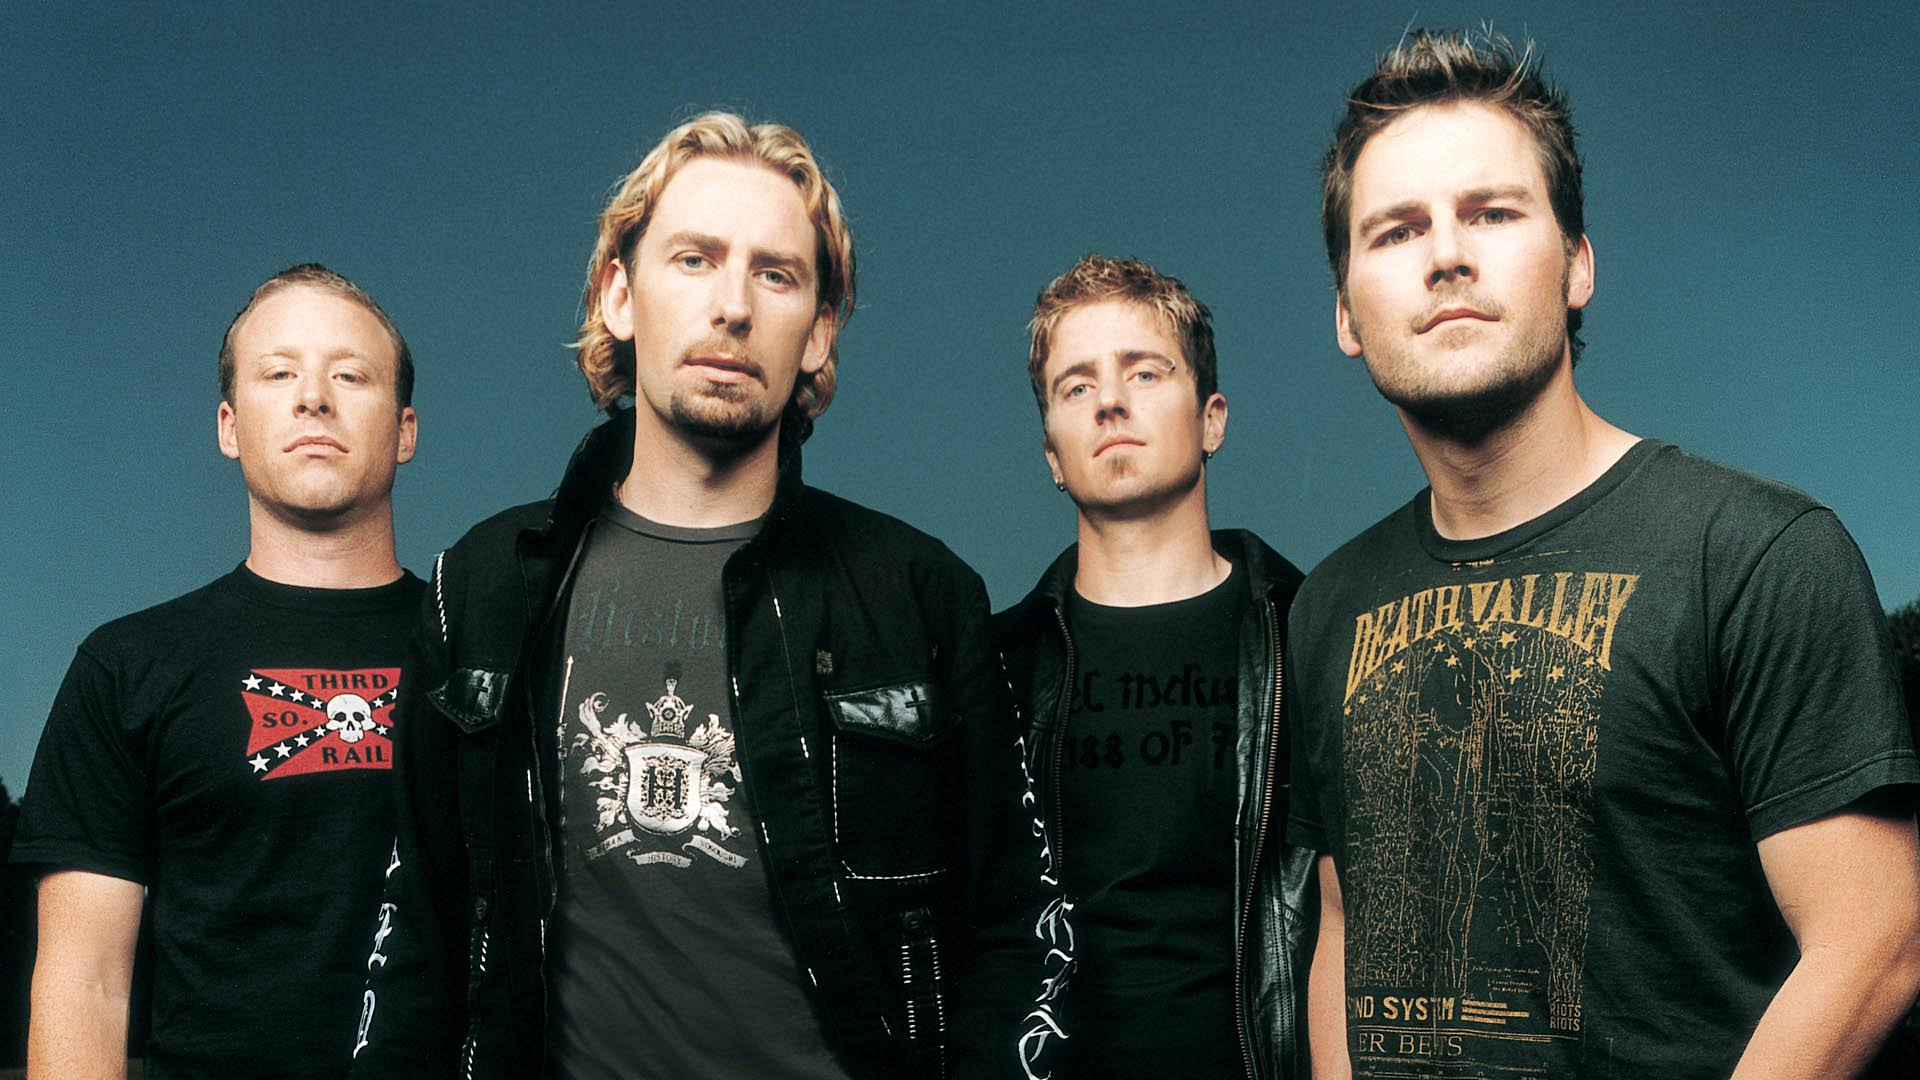 Tracey interviews Nickelback